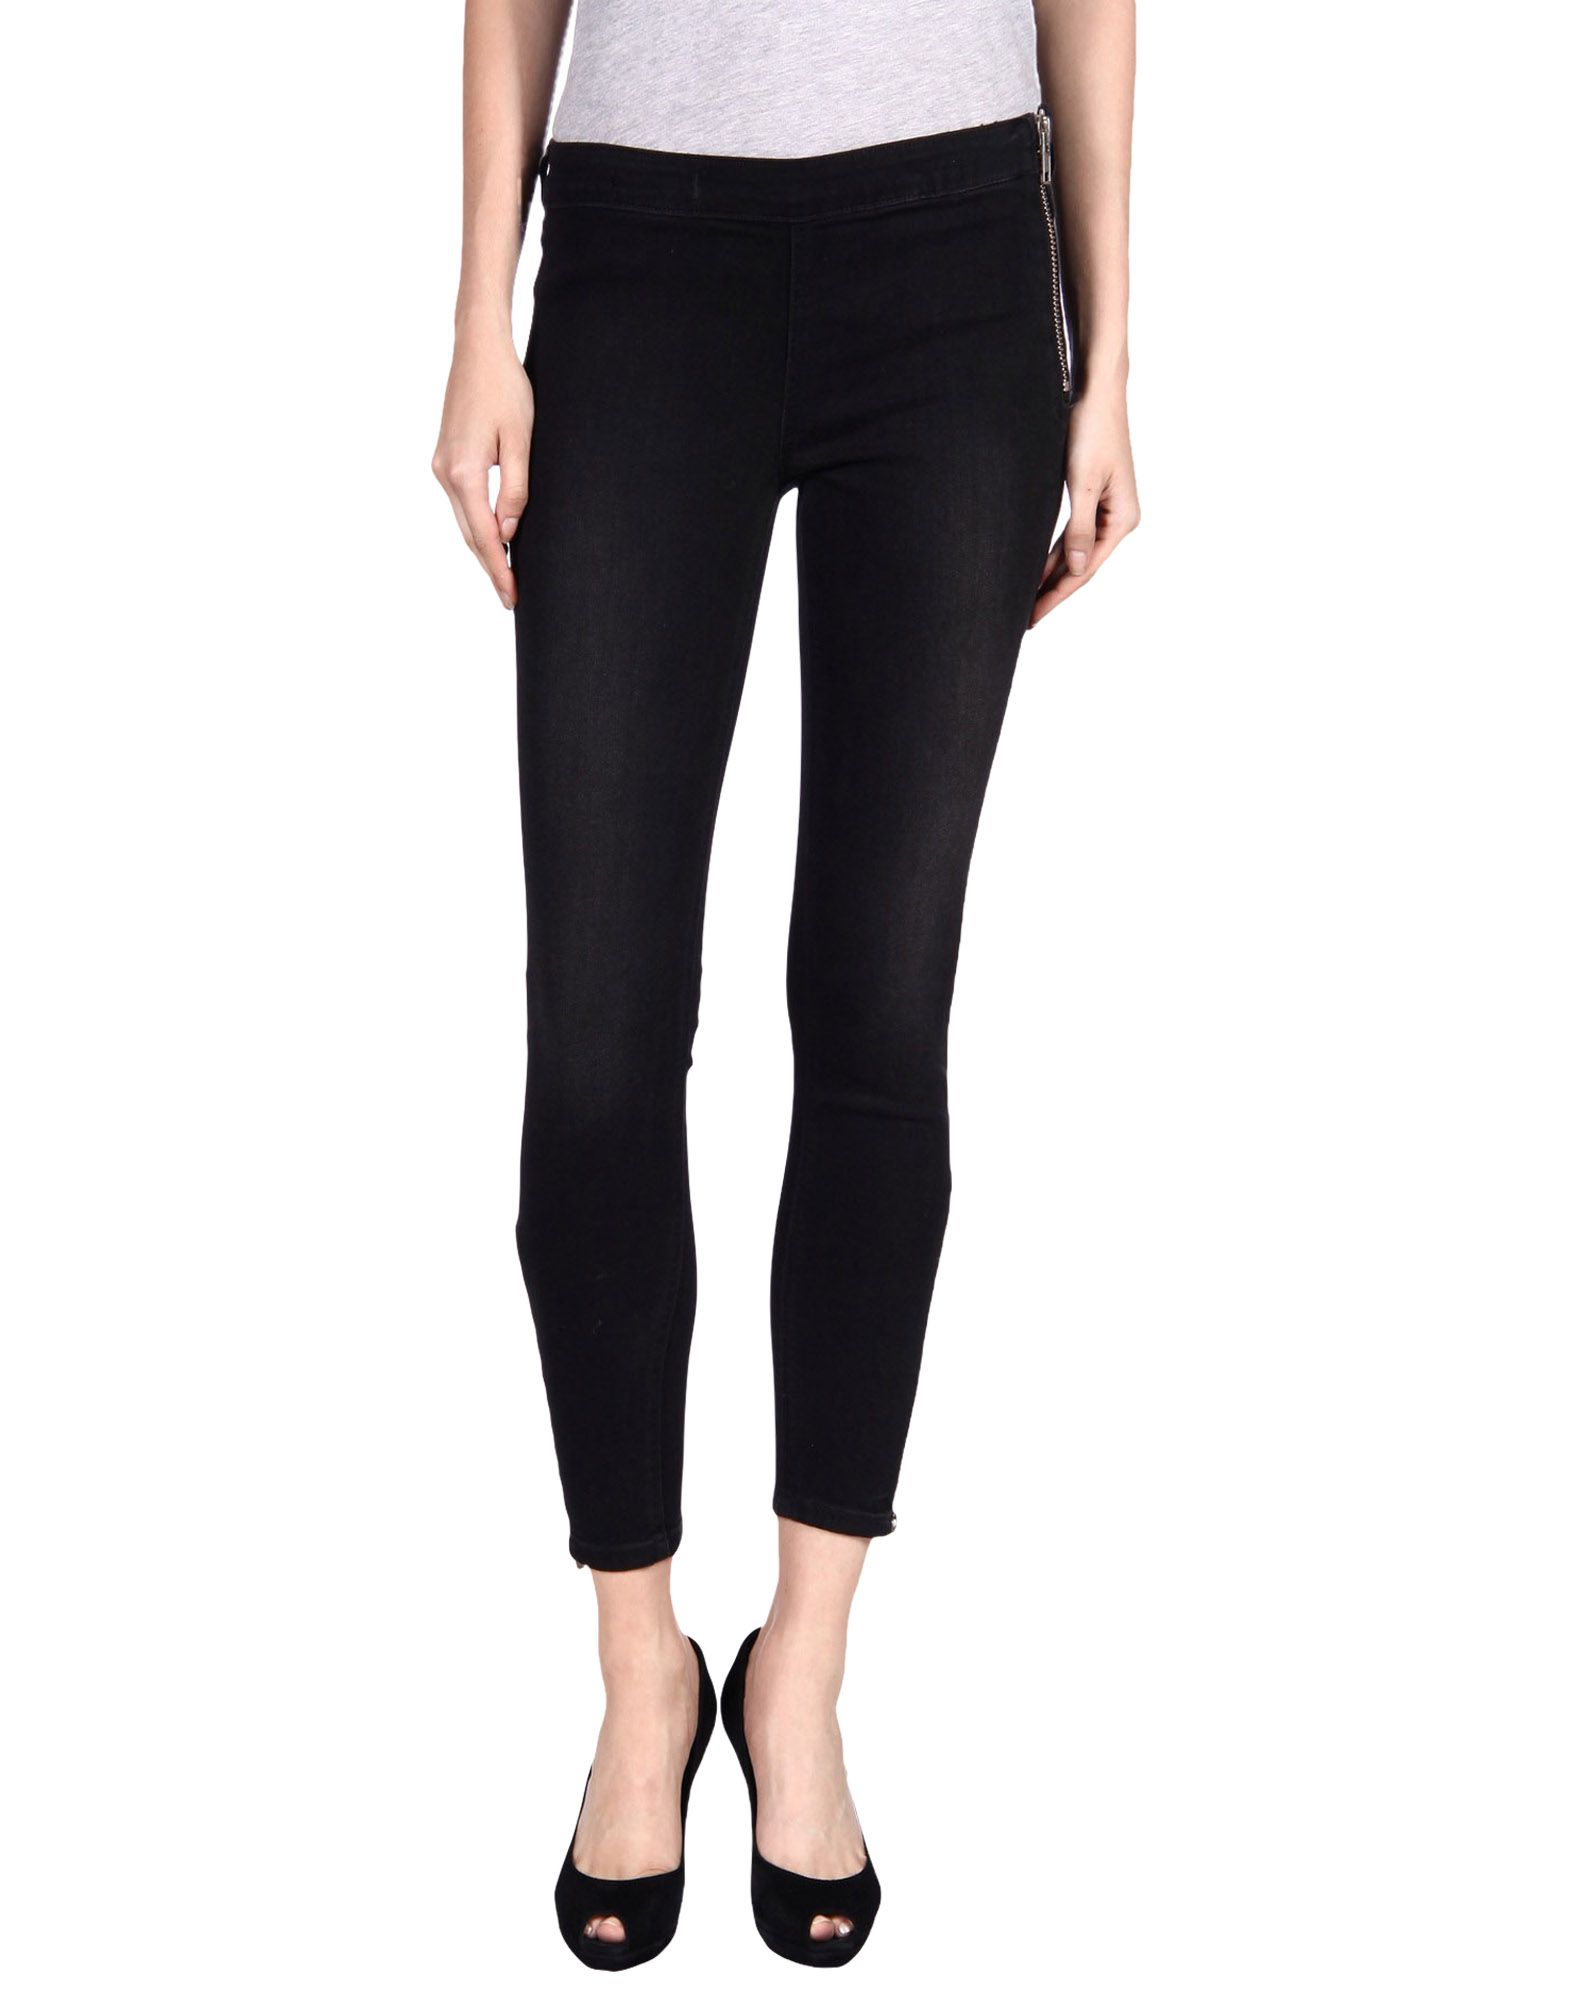 TEXTILE ELIZABETH AND JAMES Denim Pants in Black